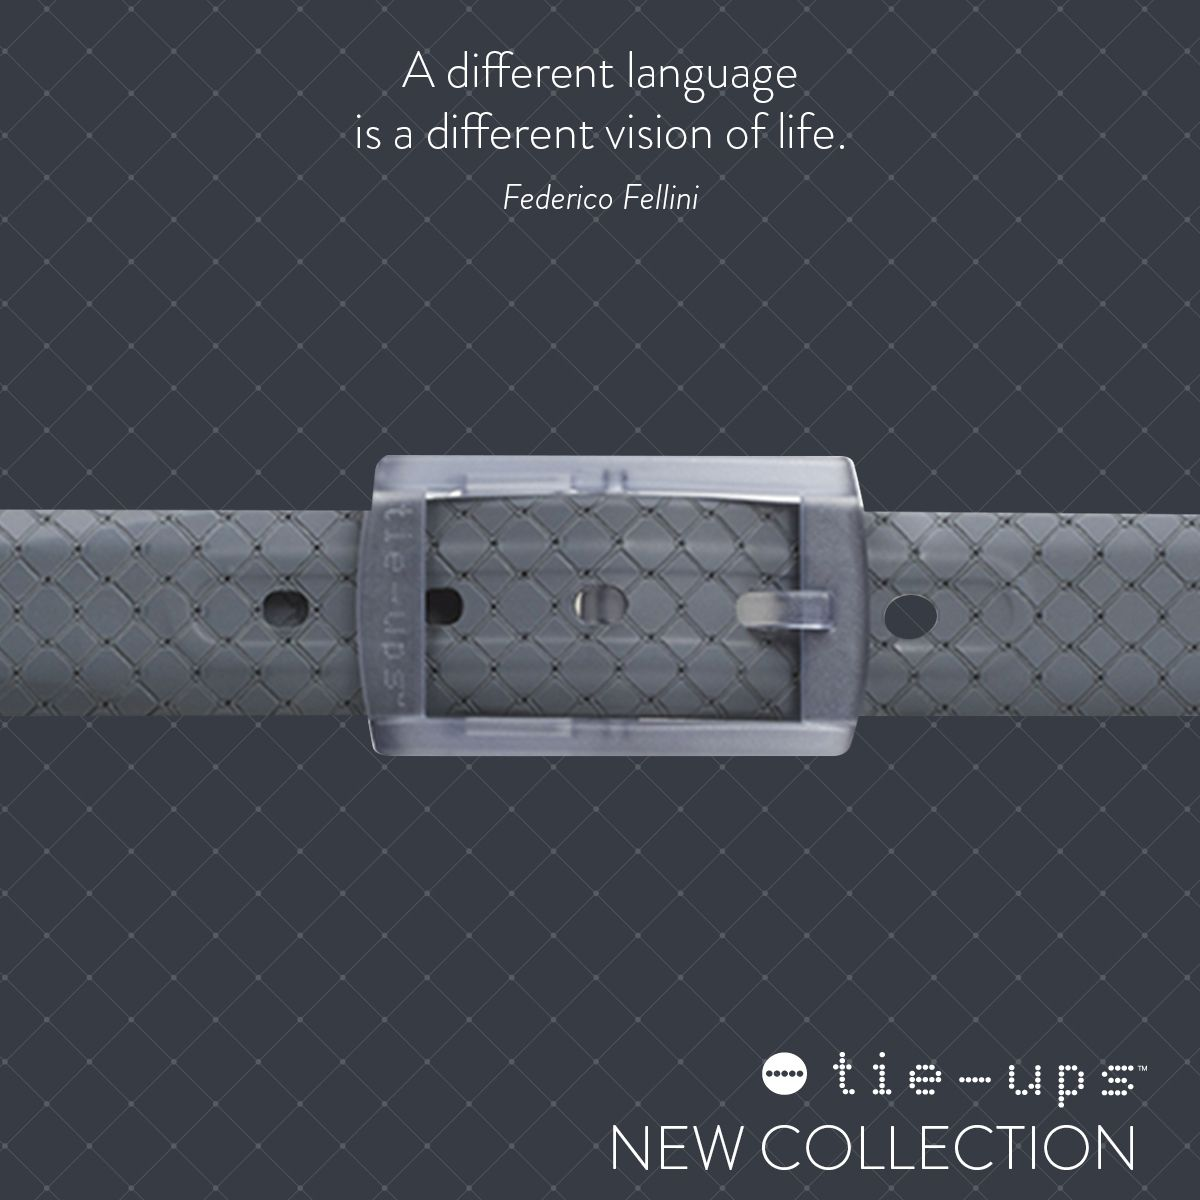 Presenting you #Ugreymelt, a new belt from Laser #Collection.   #belt #newcollection #vegan